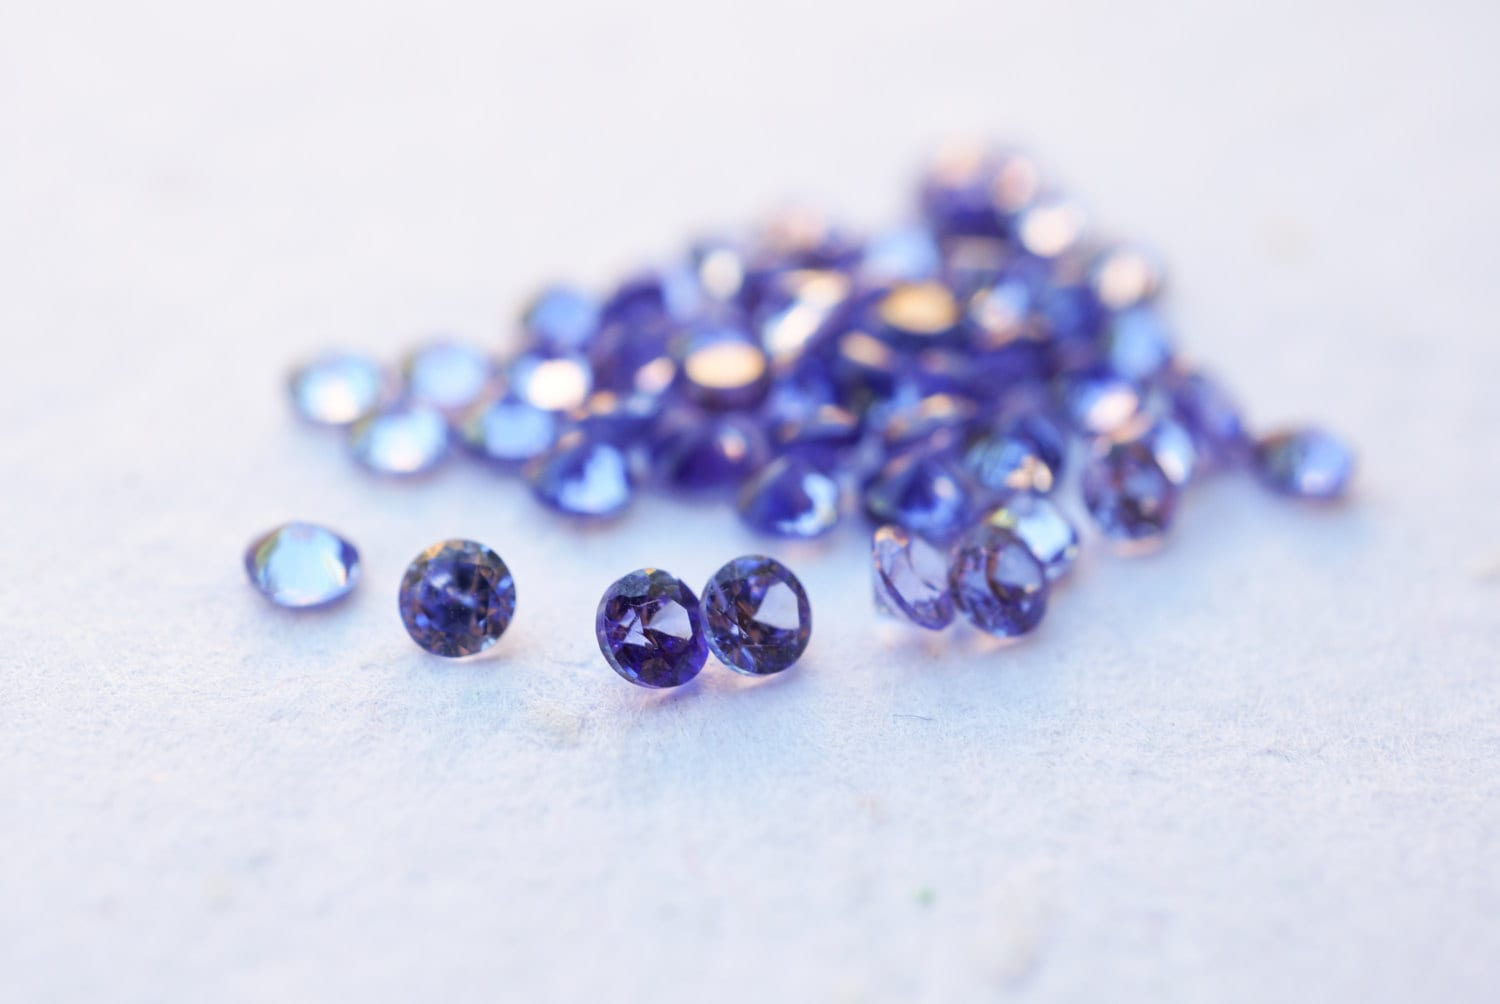 oc tanzanite gems by gem art seopai deviantart on